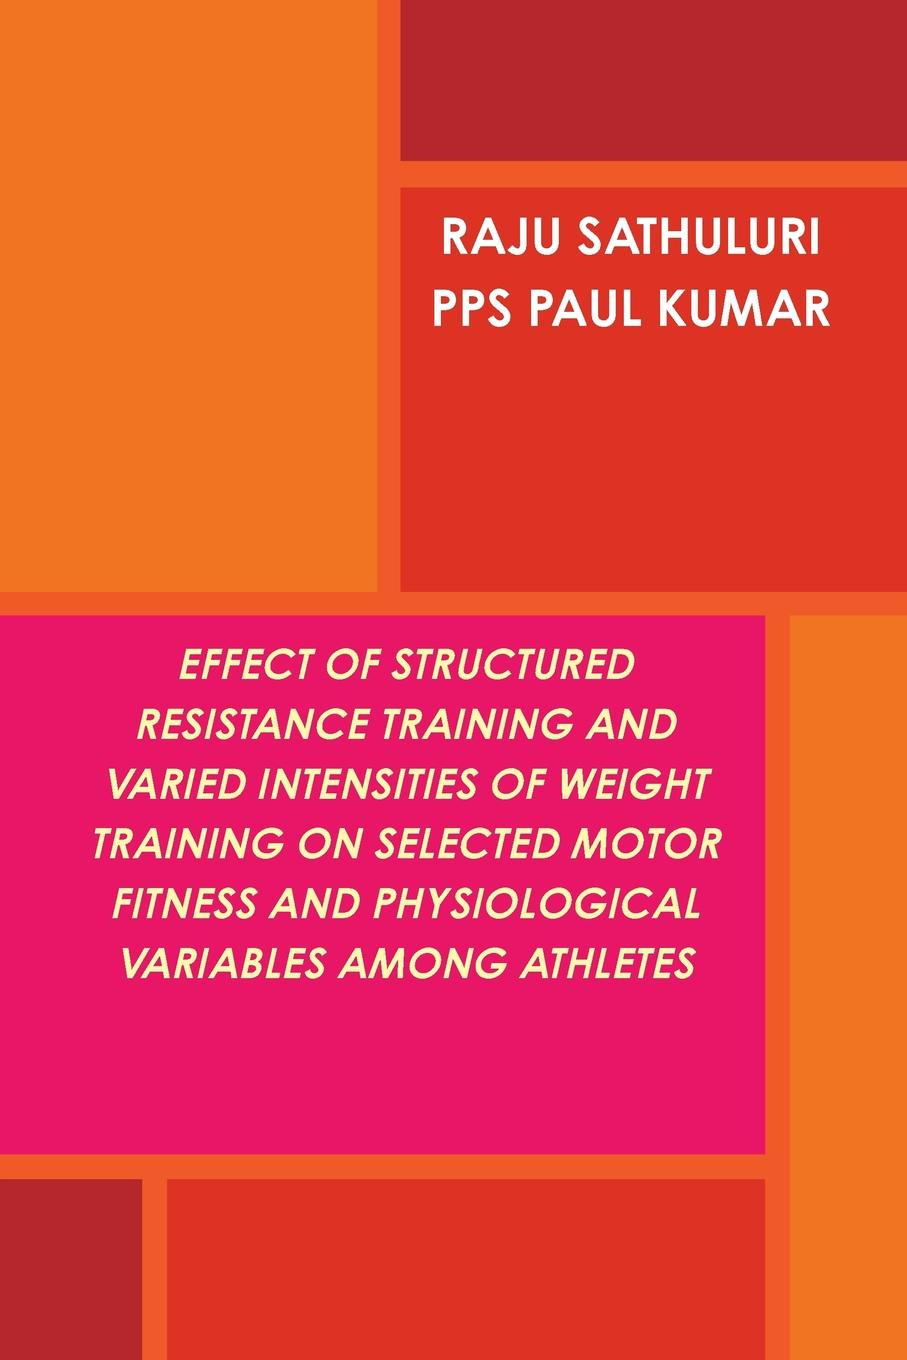 RAJU SATHULURI, PAUL KUMAR P.P.S EFFECT OF STRUCTURED RESISTANCE TRAINING AND VARIED INTENSITIES OF WEIGHT TRAINING ON SELECTED MOTOR FITNESS AND PHYSIOLOGICAL VARIABLES AMONG ATHLETES недорго, оригинальная цена